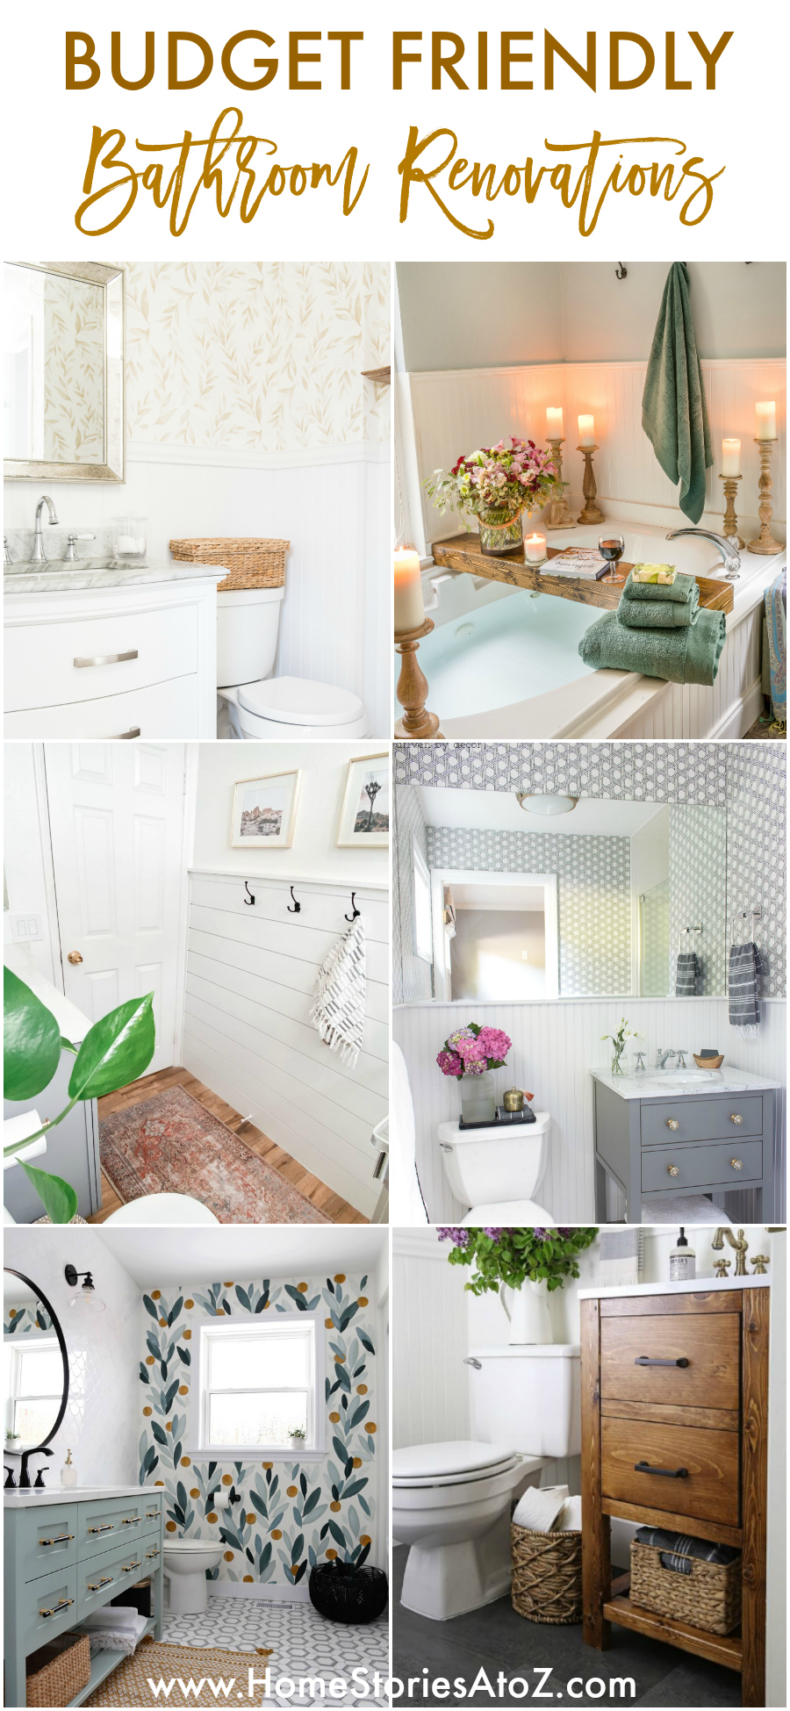 Budget Friendly Bathroom Renovation Ideas